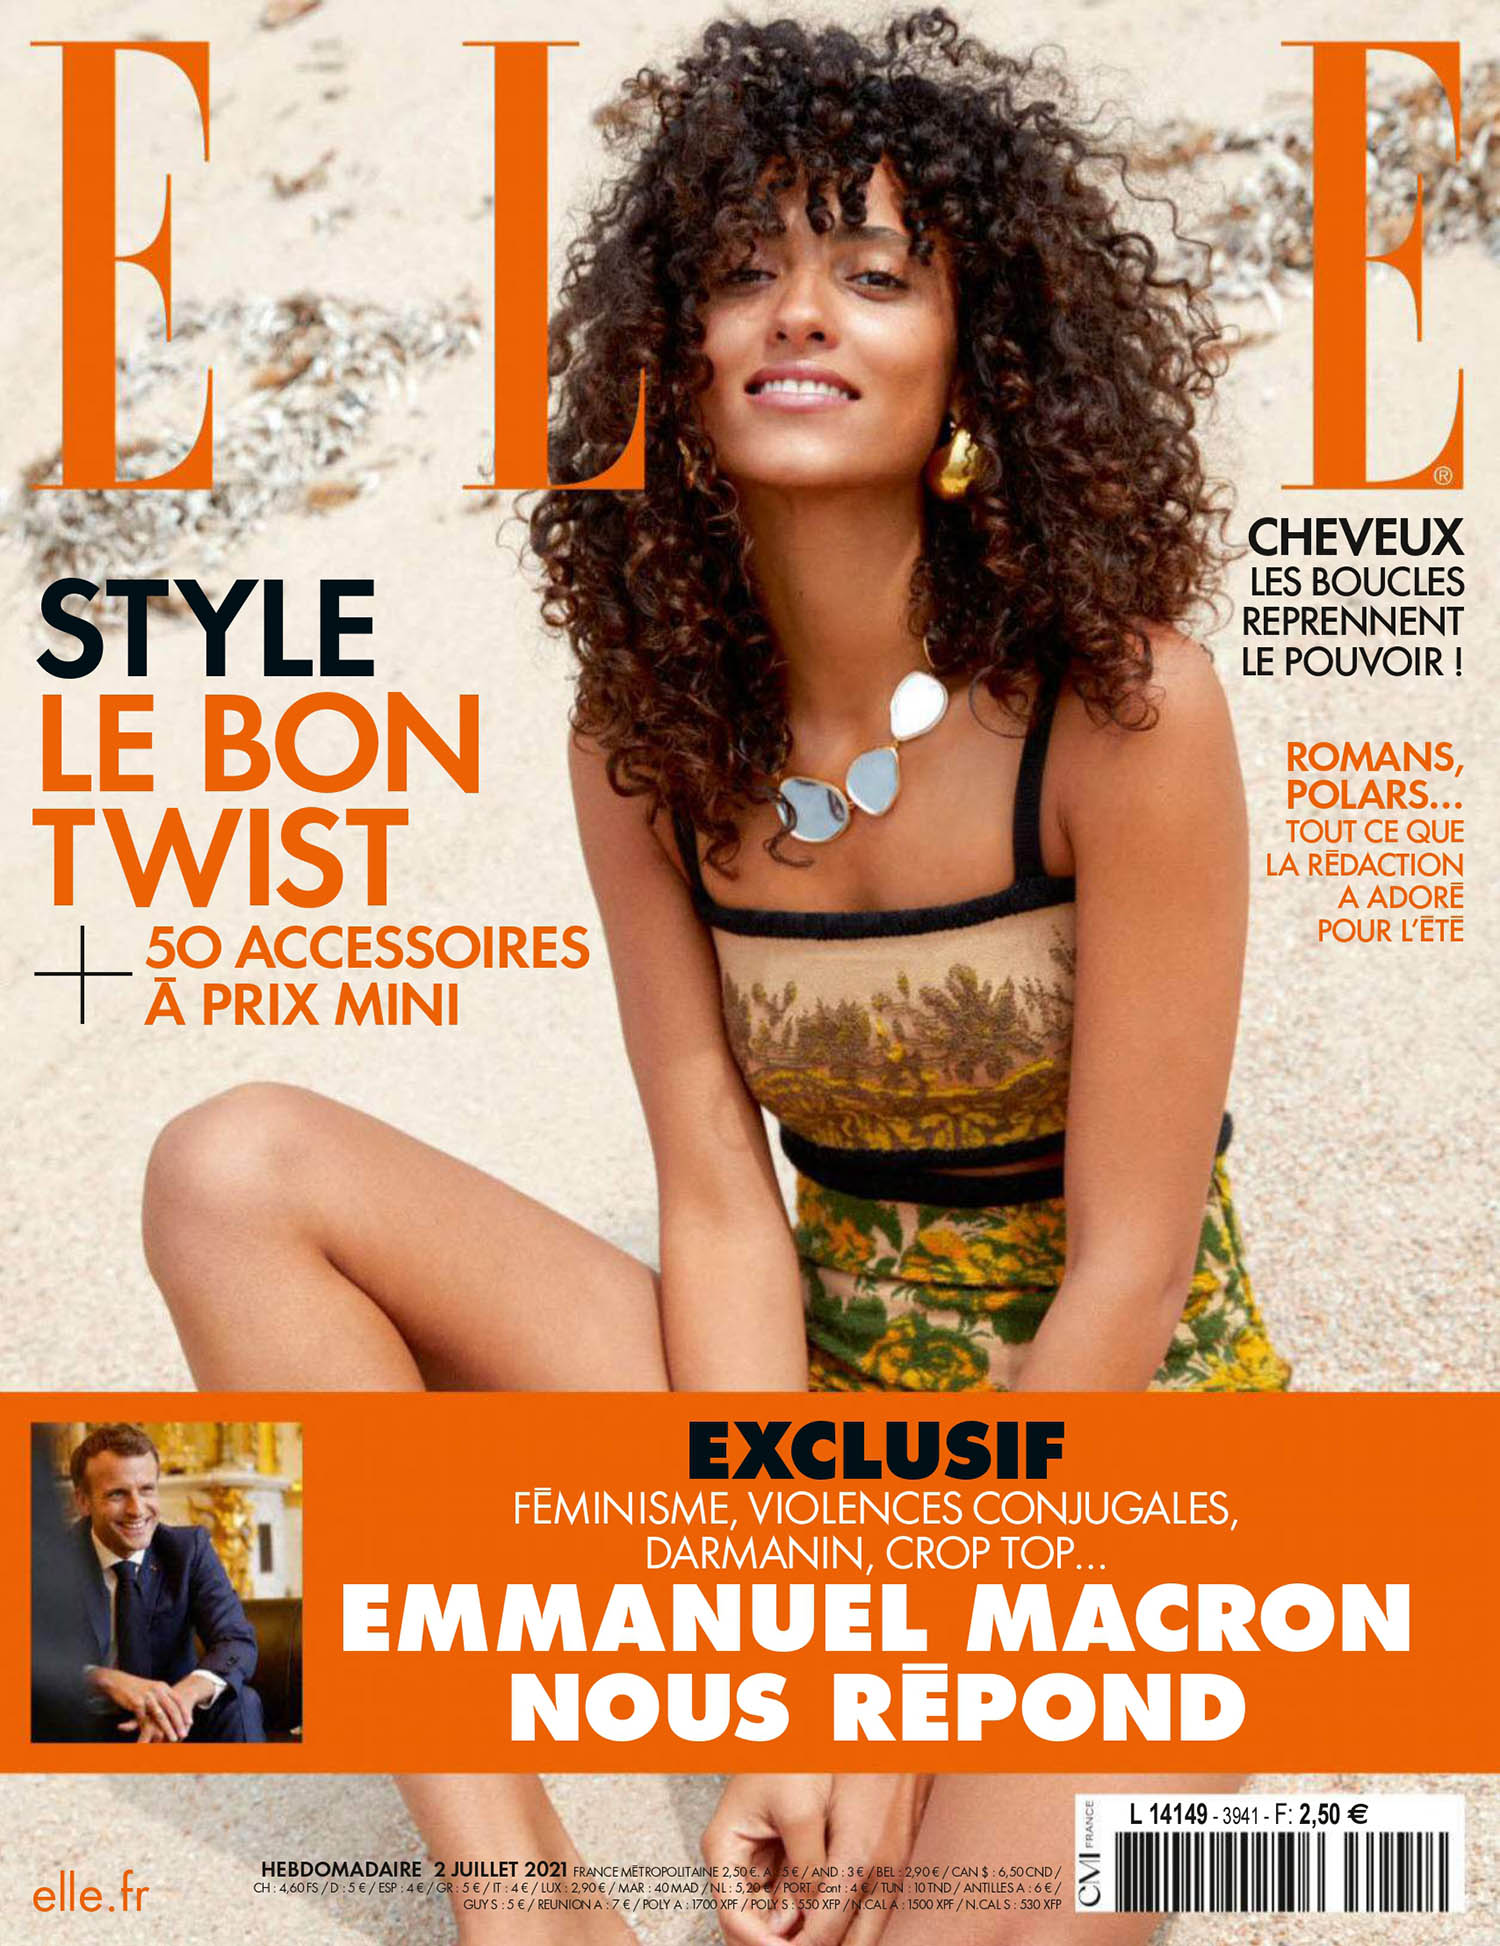 Mélodie Vaxelaire covers Elle France July 2nd, 2021 by Sam Hendel